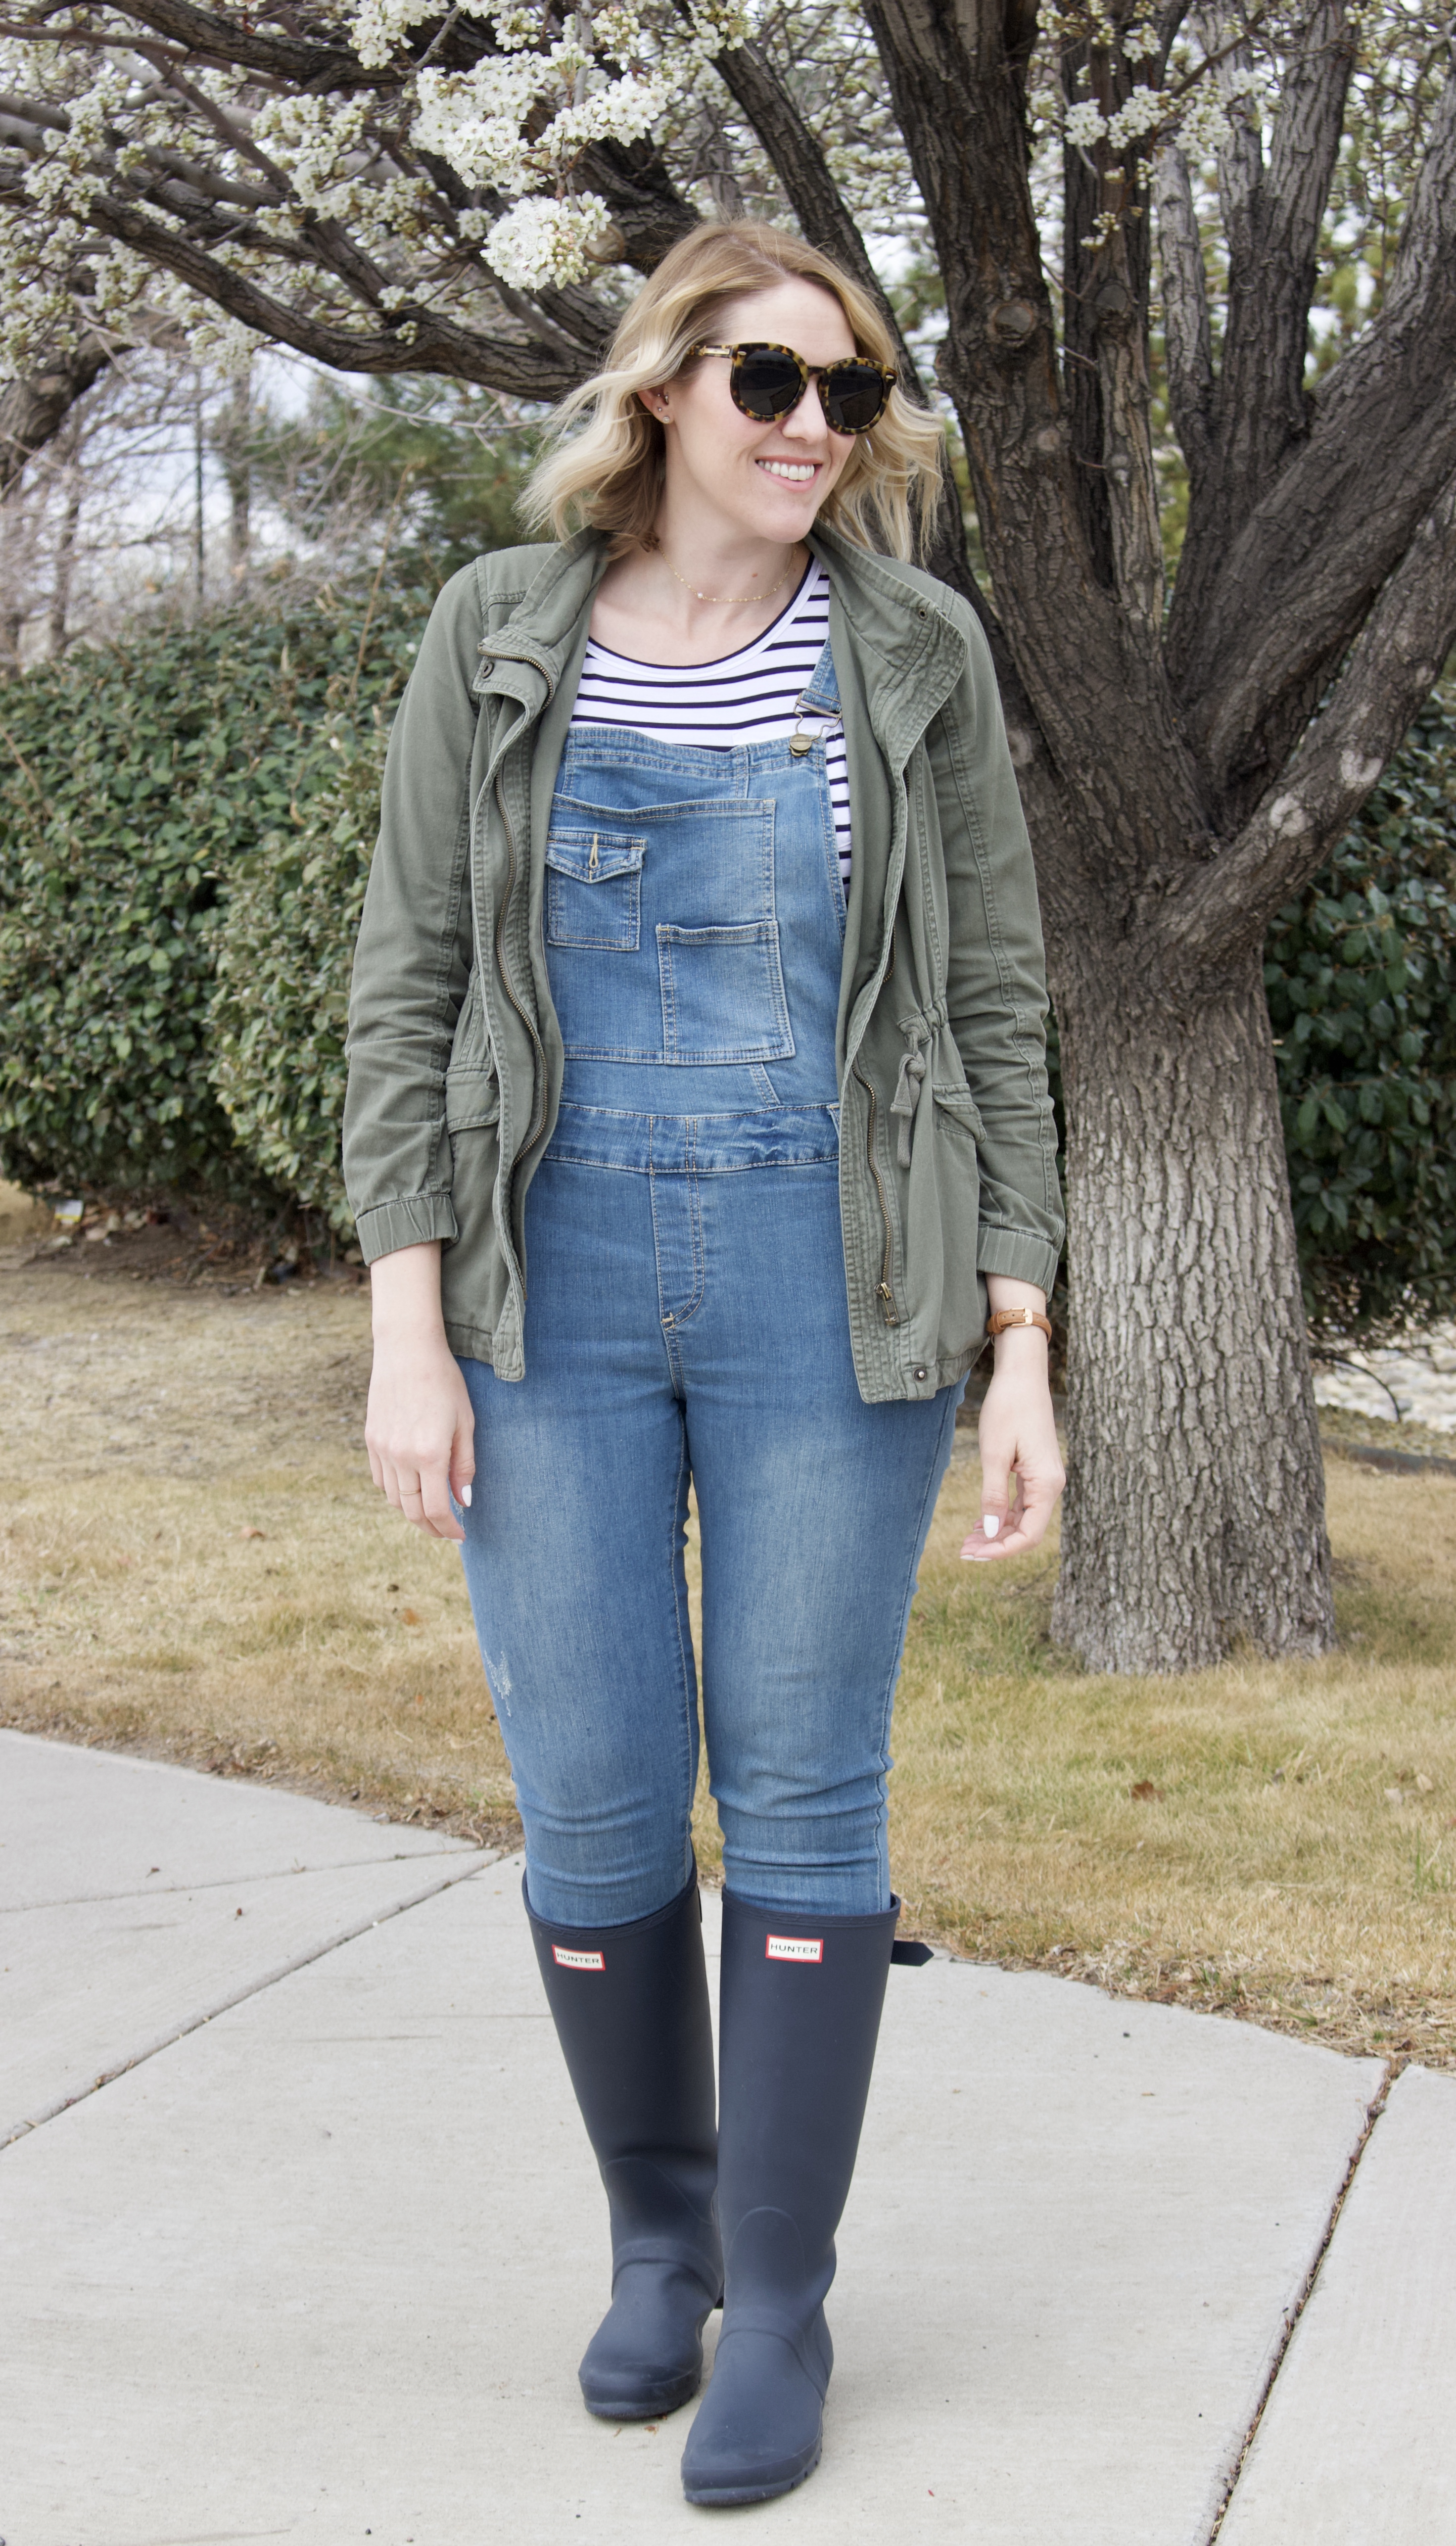 overalls hunter boots outfit #hunterboots #overalls #springoutfit